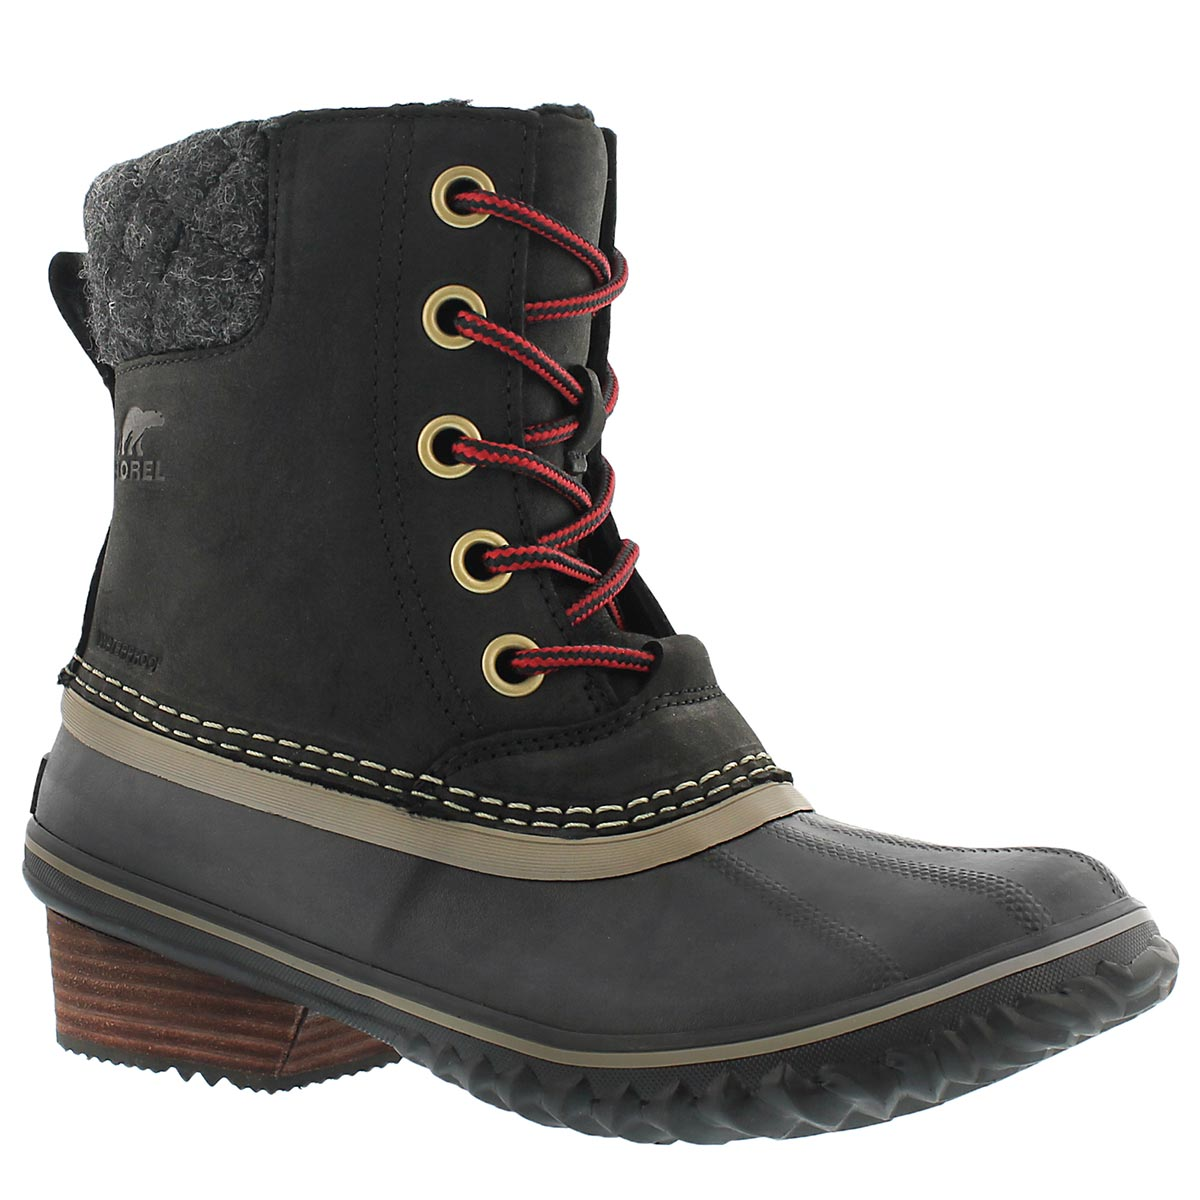 Women's SLIMPACK II LACE black waterproof boots